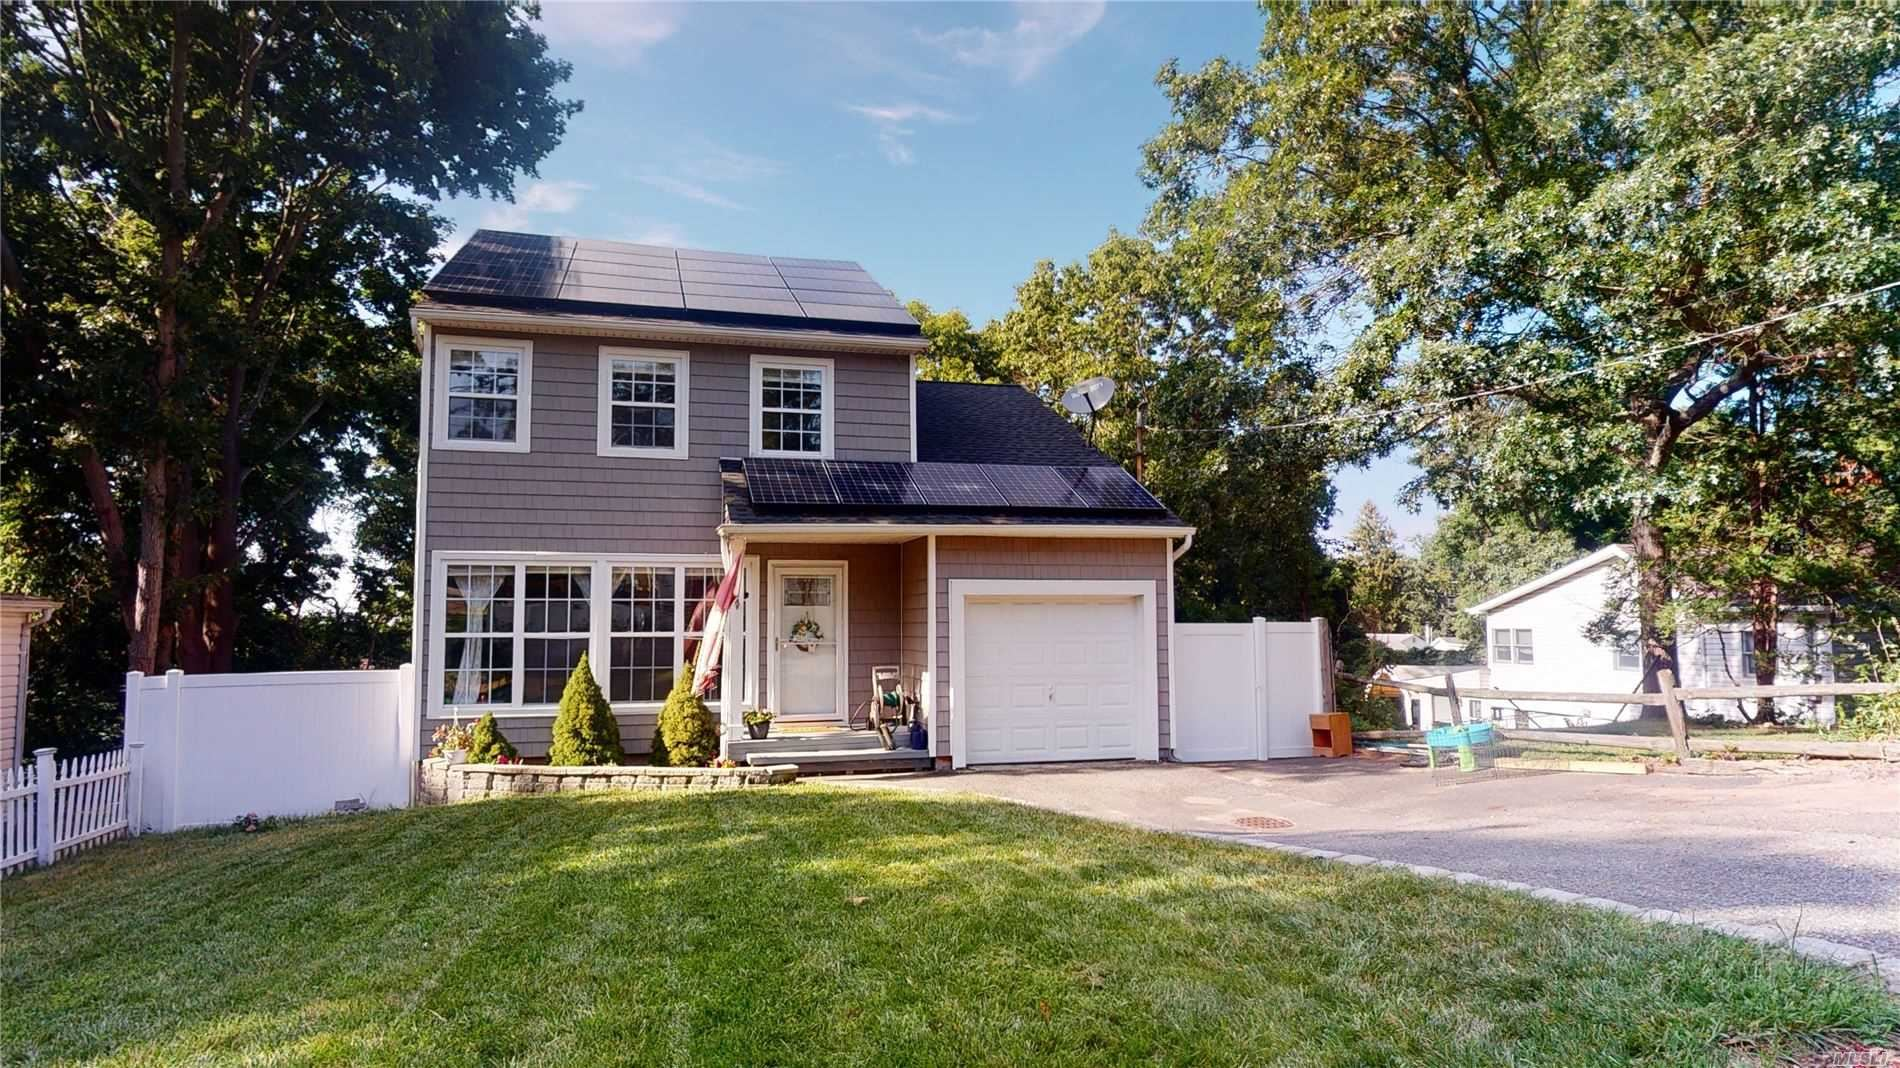 79 Clearview Ave, Selden, NY 11784 - MLS#: 3239598